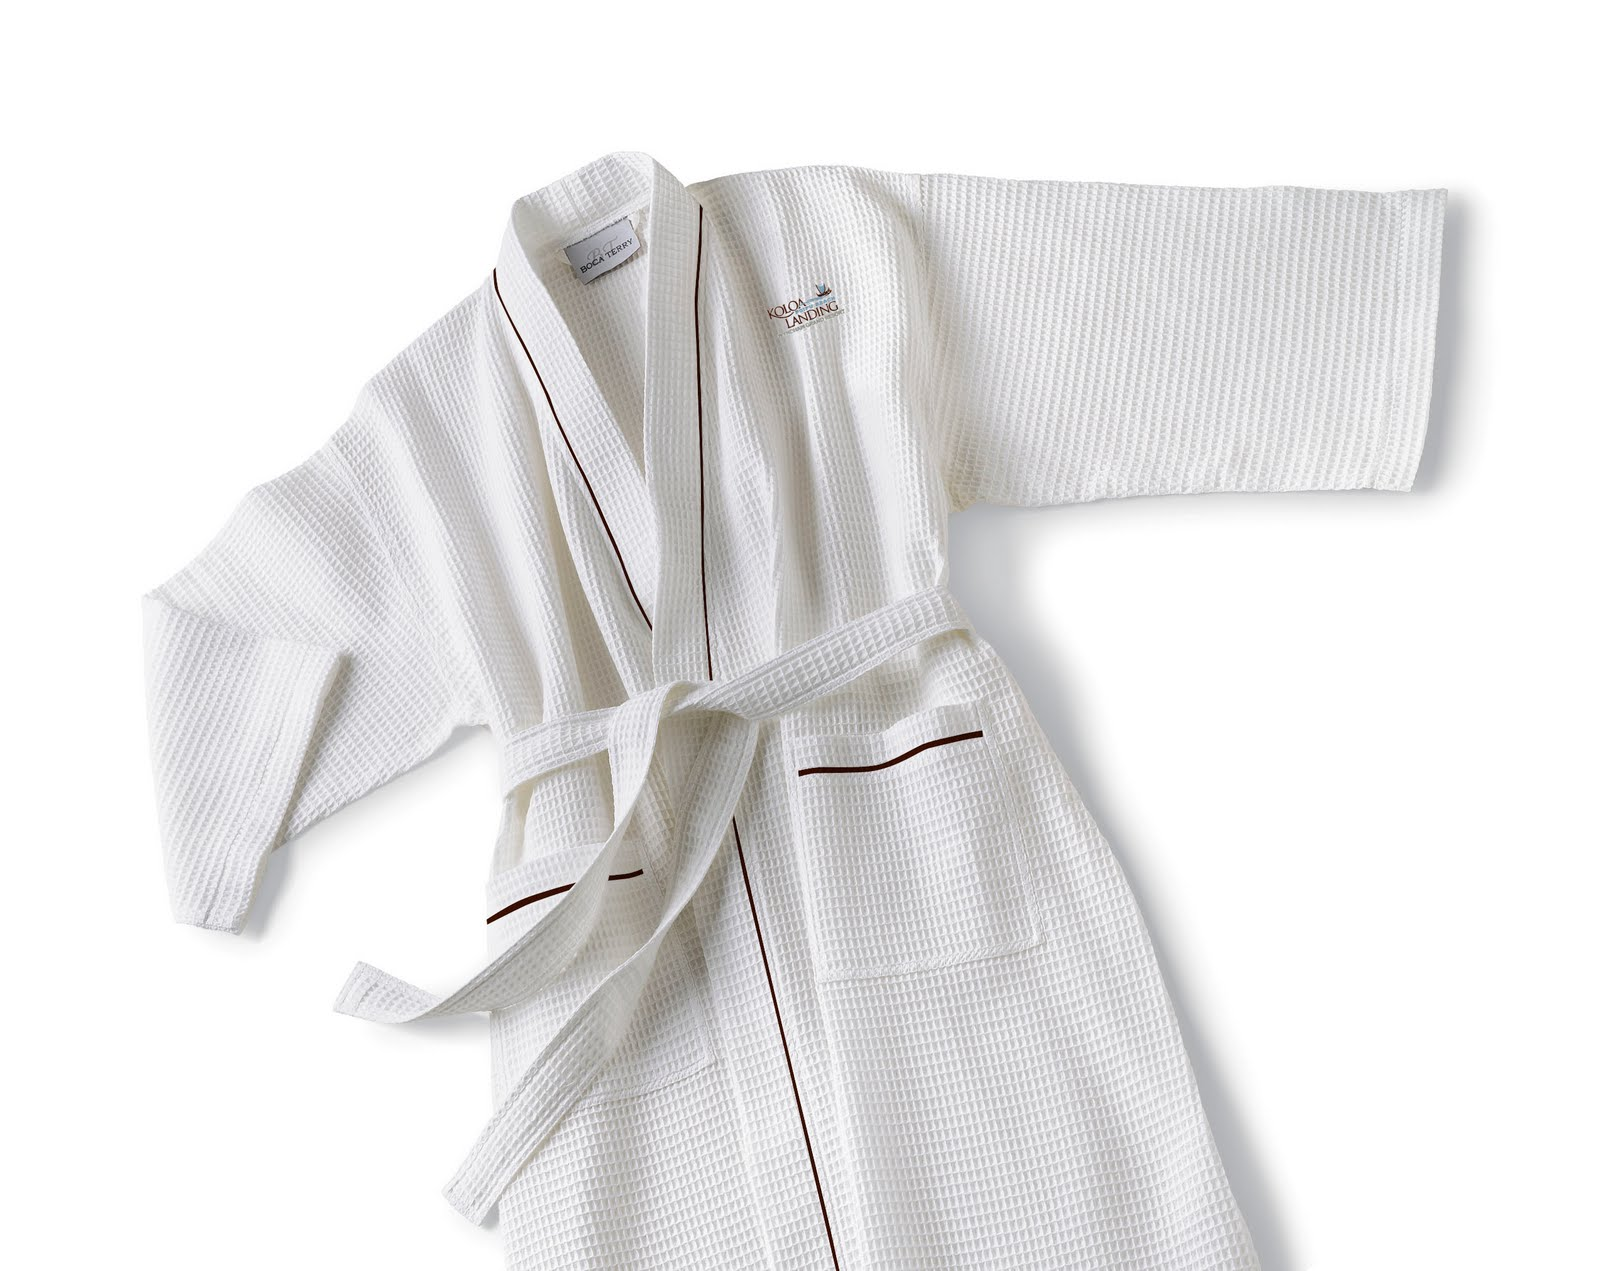 44ab5df478 Could More Meetings and Conventions at Hotels Mean Greater Bathrobe and  Promotional Sales